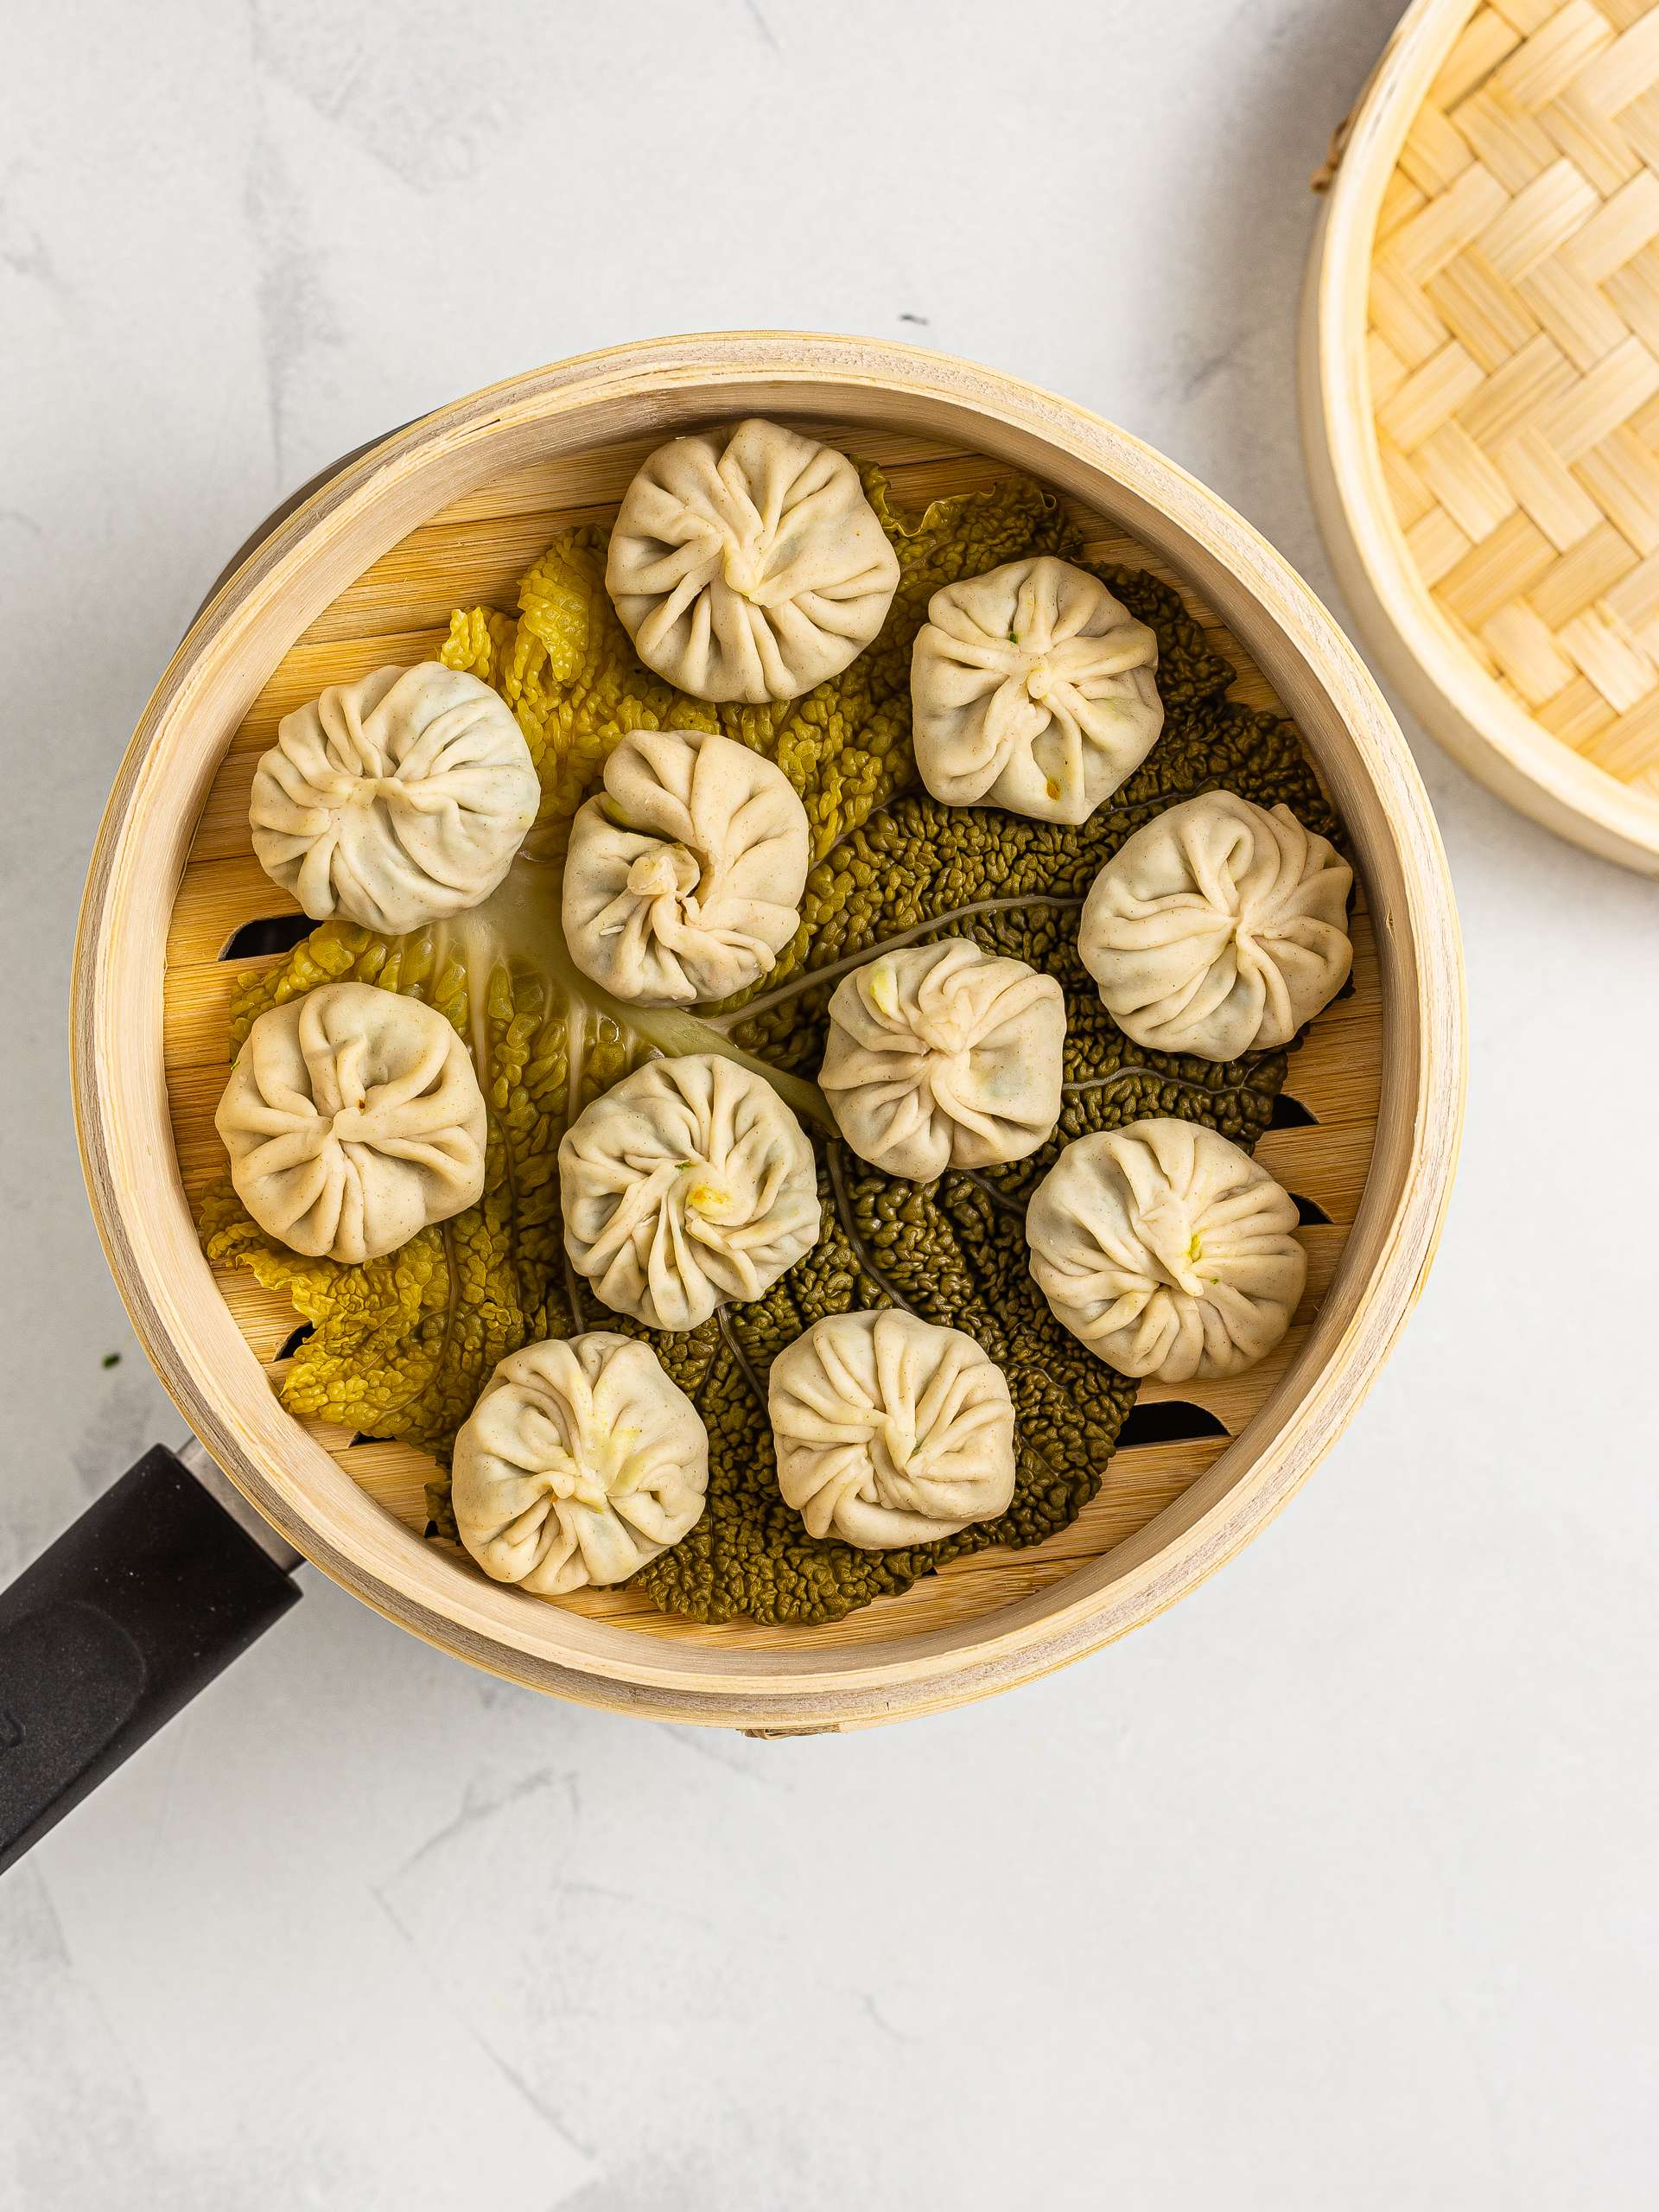 steamed momos dumplings in a steaming bakset